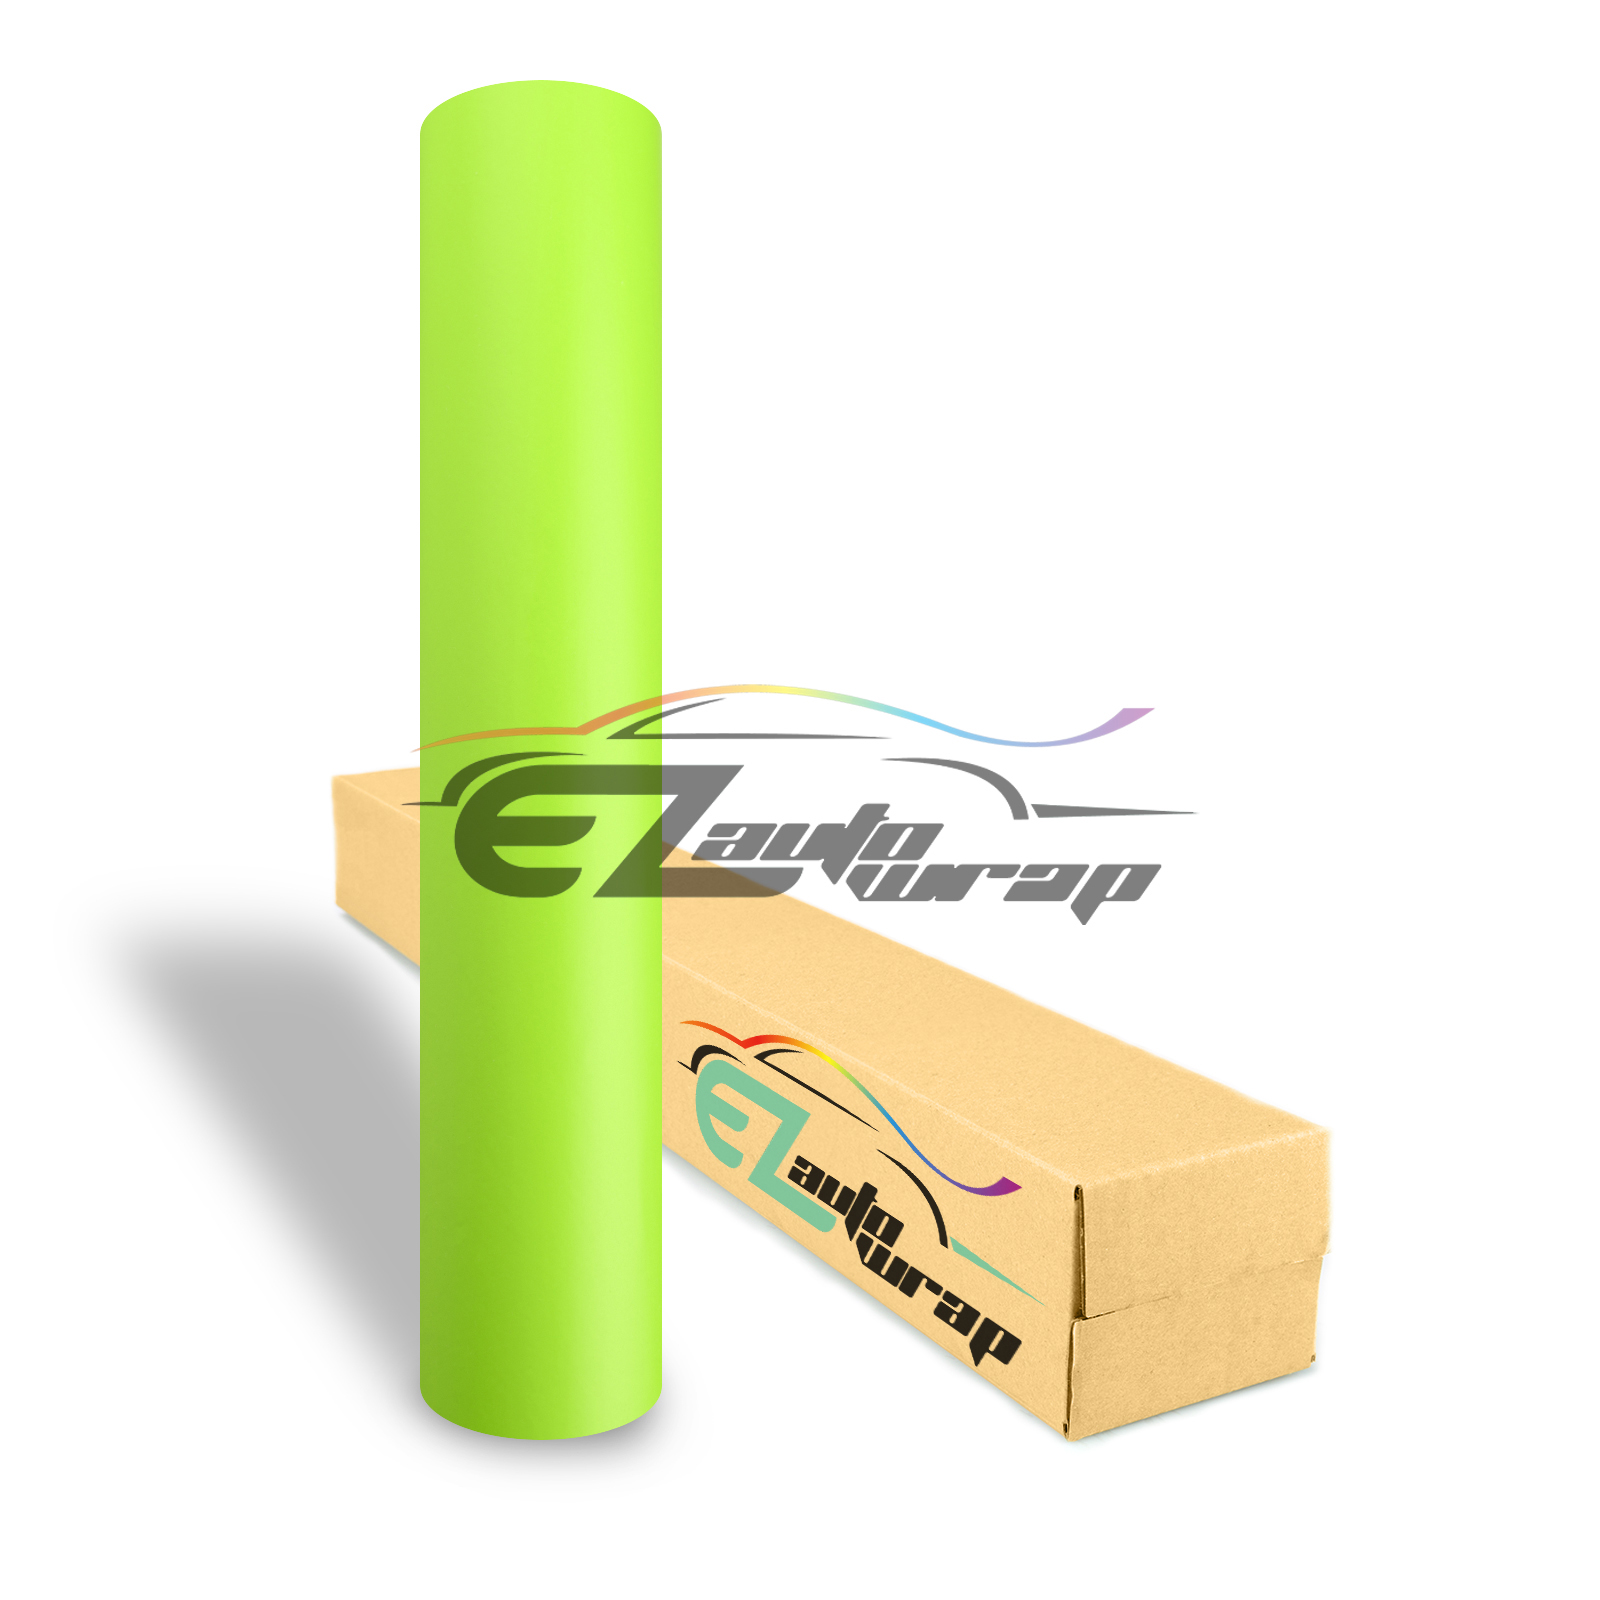 EZAUTOWRAP Matte Neon Yellow Car Vinyl Wrap Vehicle Sticker Decal Film Sheet Peel And Stick With Air Release Technology Decoration Wallpaper